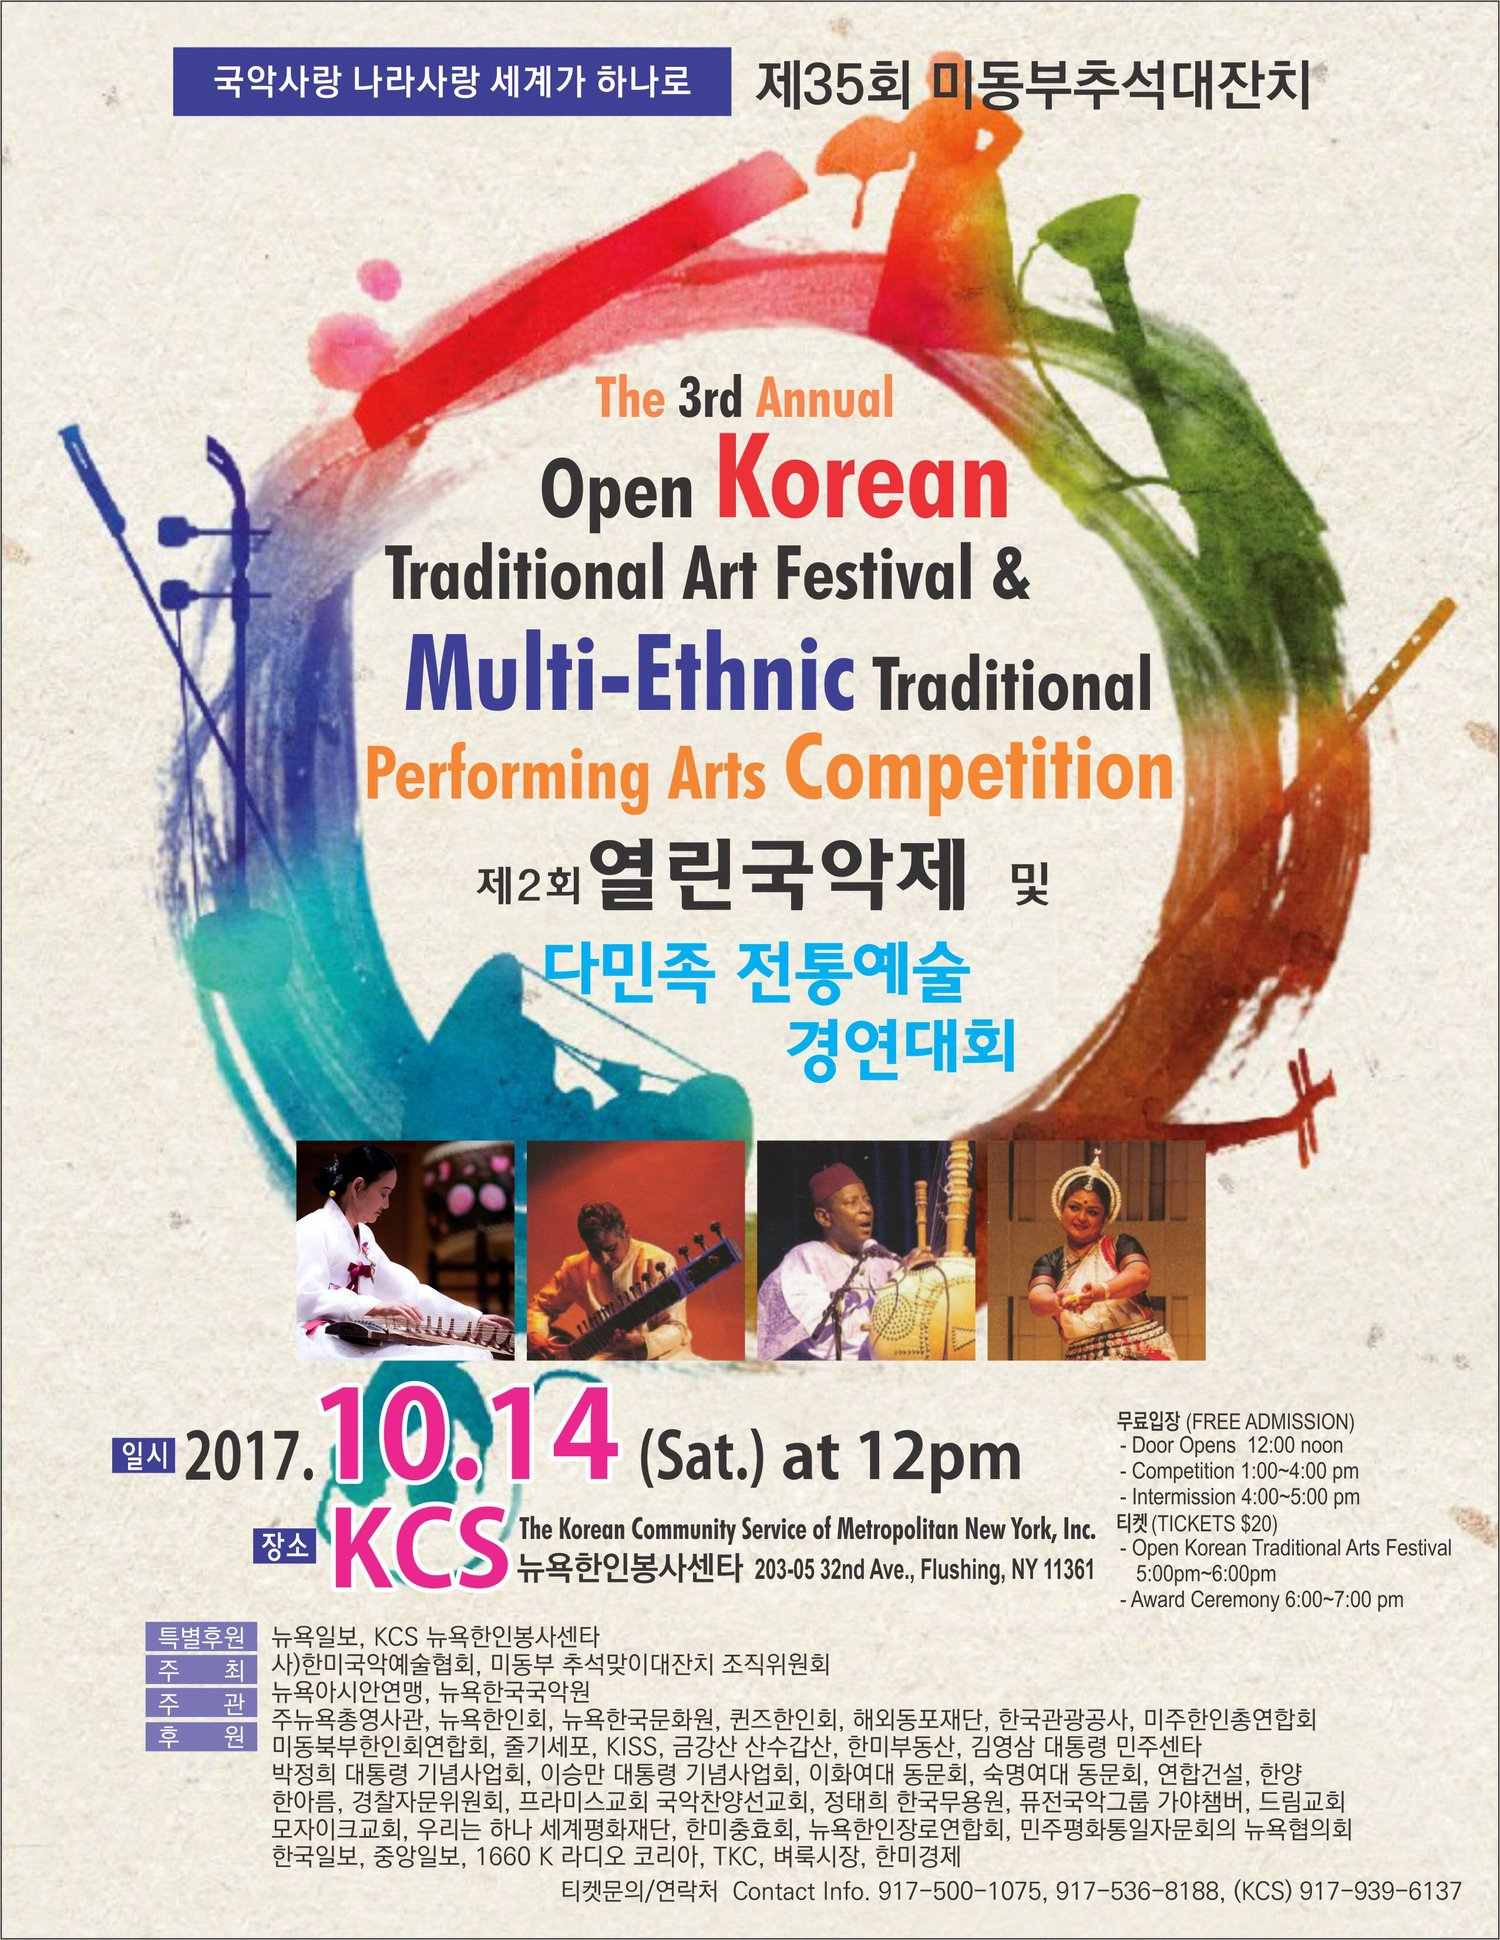 The 3rd Annual Multi-Ethnic Performing Arts Competition